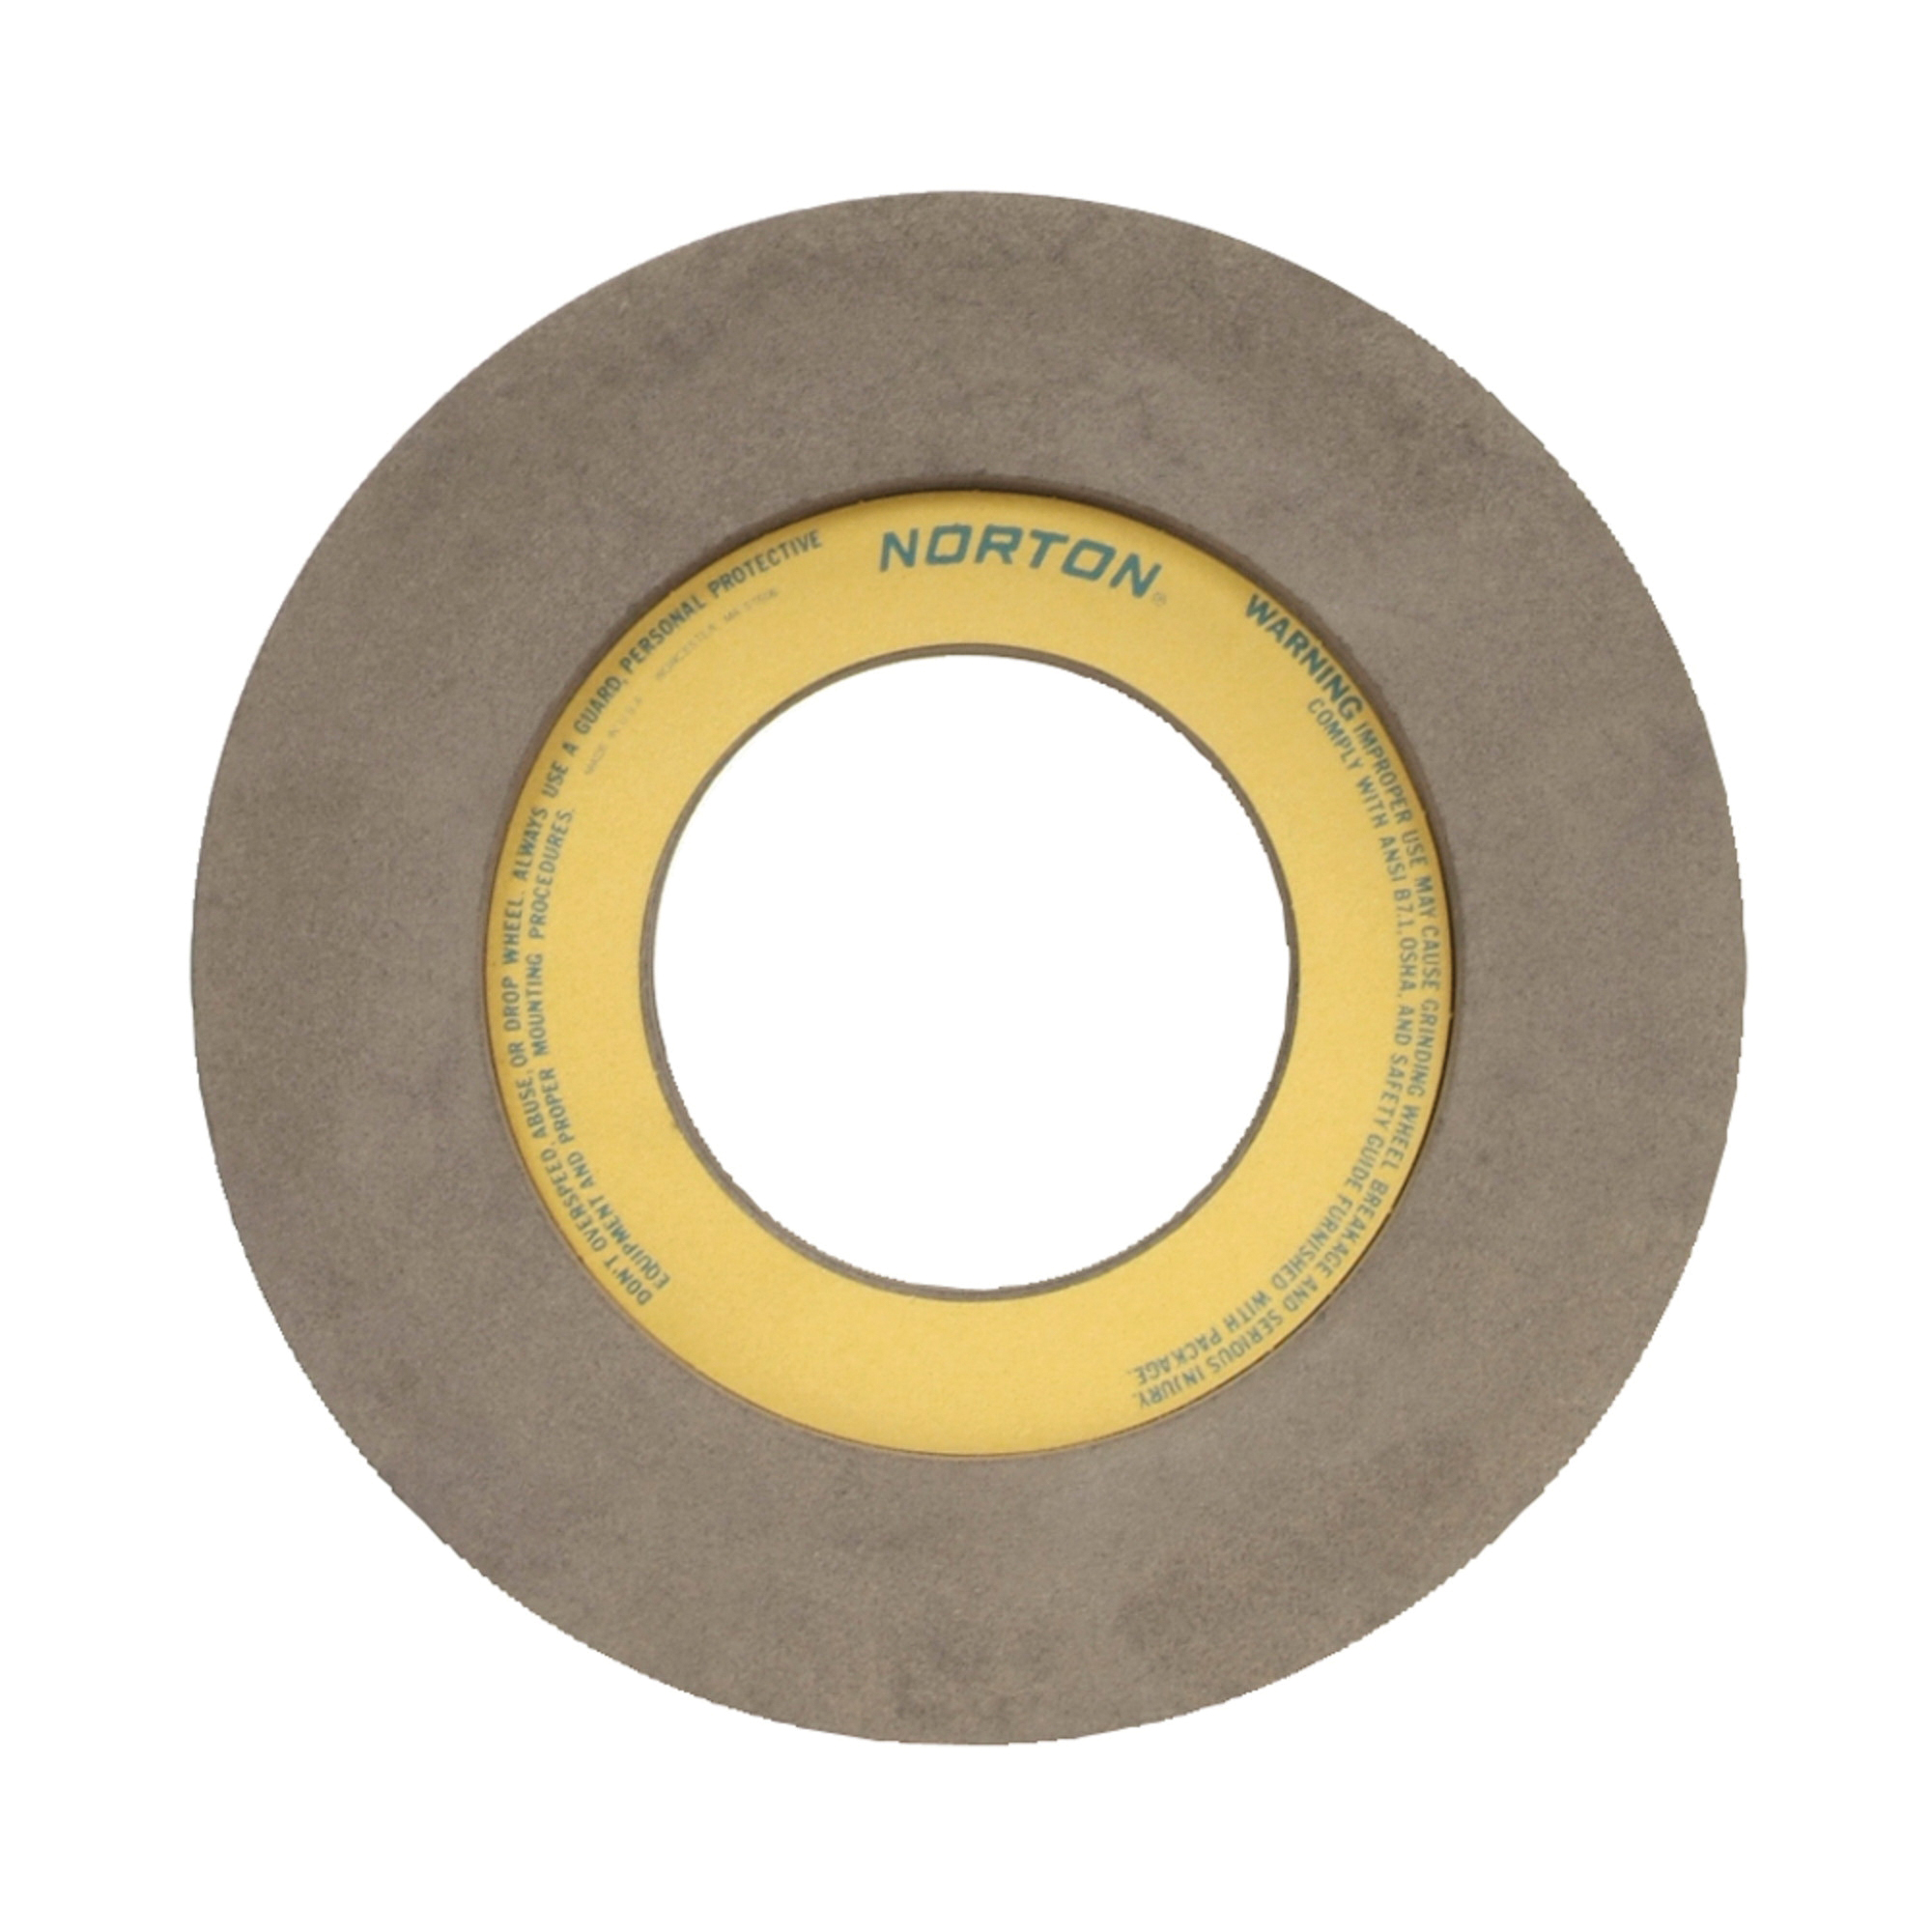 Norton® 66253322196 57A Centerless Feed Wheel, 14 in Dia x 20 in W, 6 in Hole, Type 7, 80 Grit